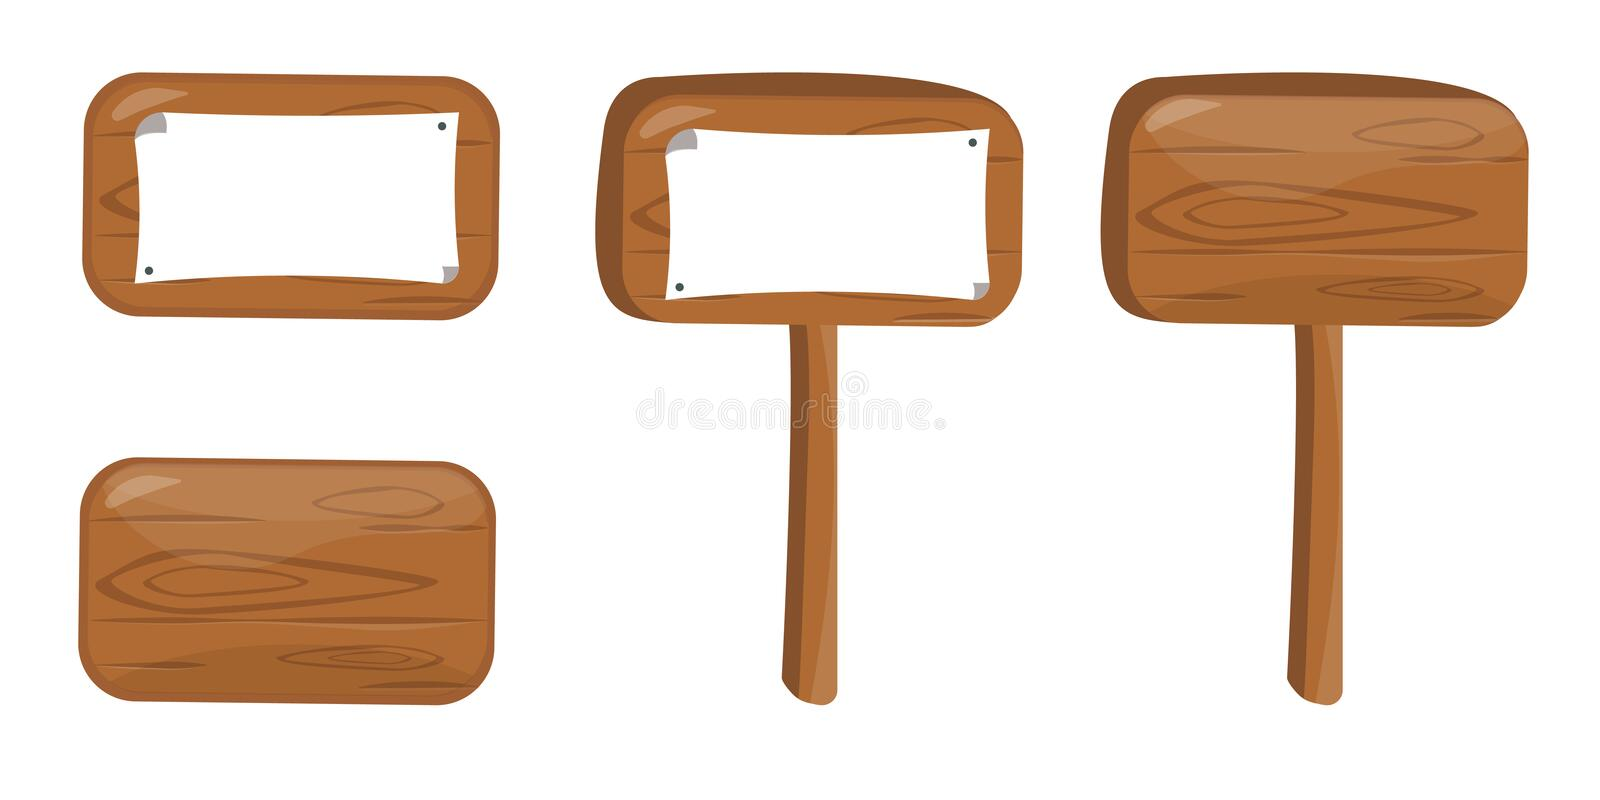 Set of cartoon wooden boards vector illustration